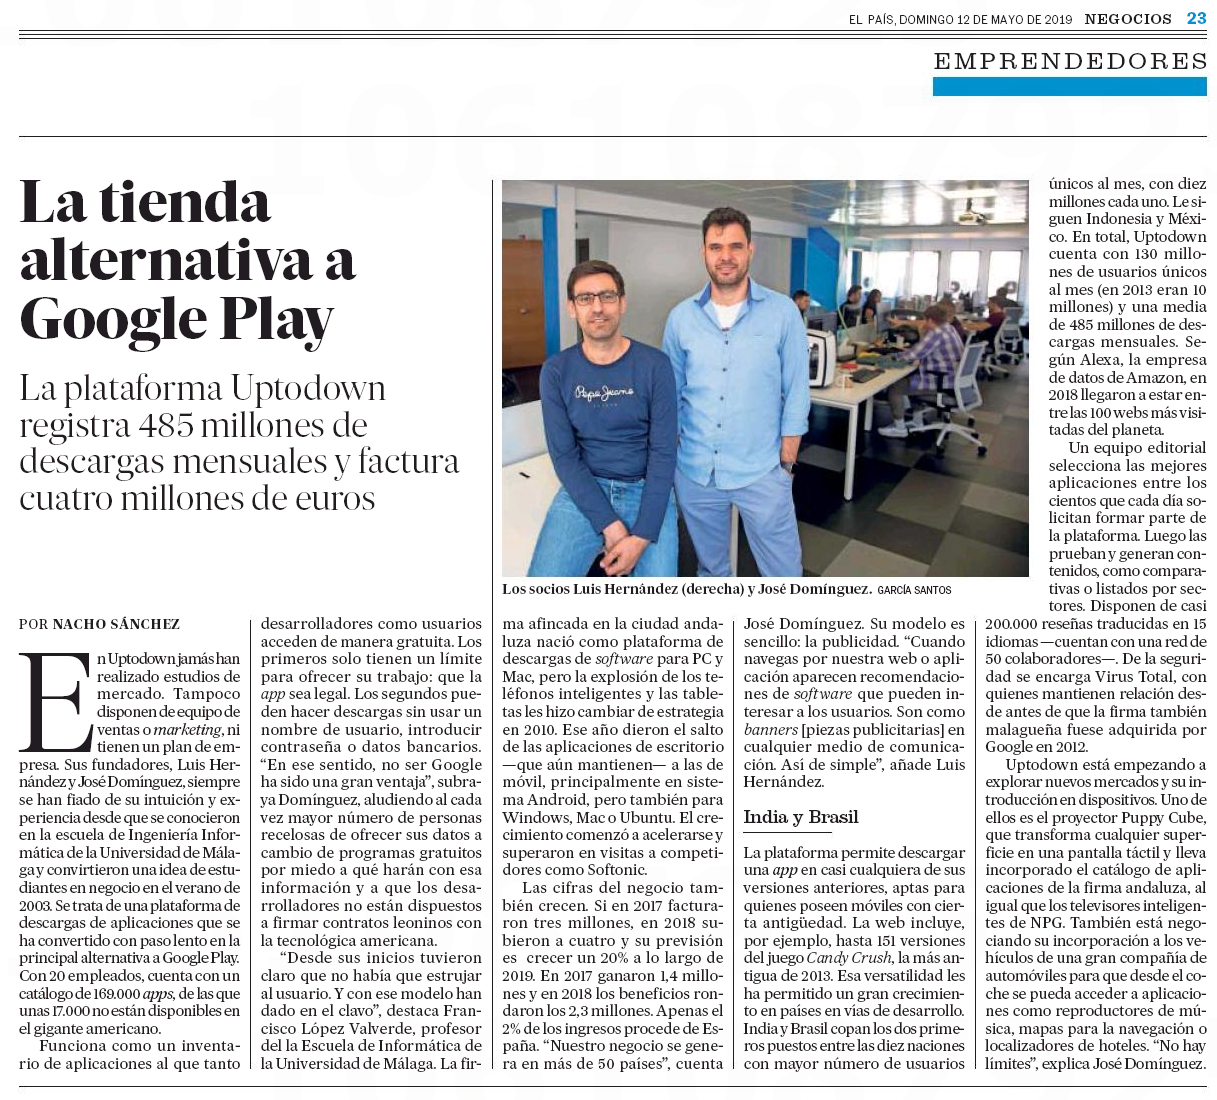 elpais_uptodown_alternativa_google_play